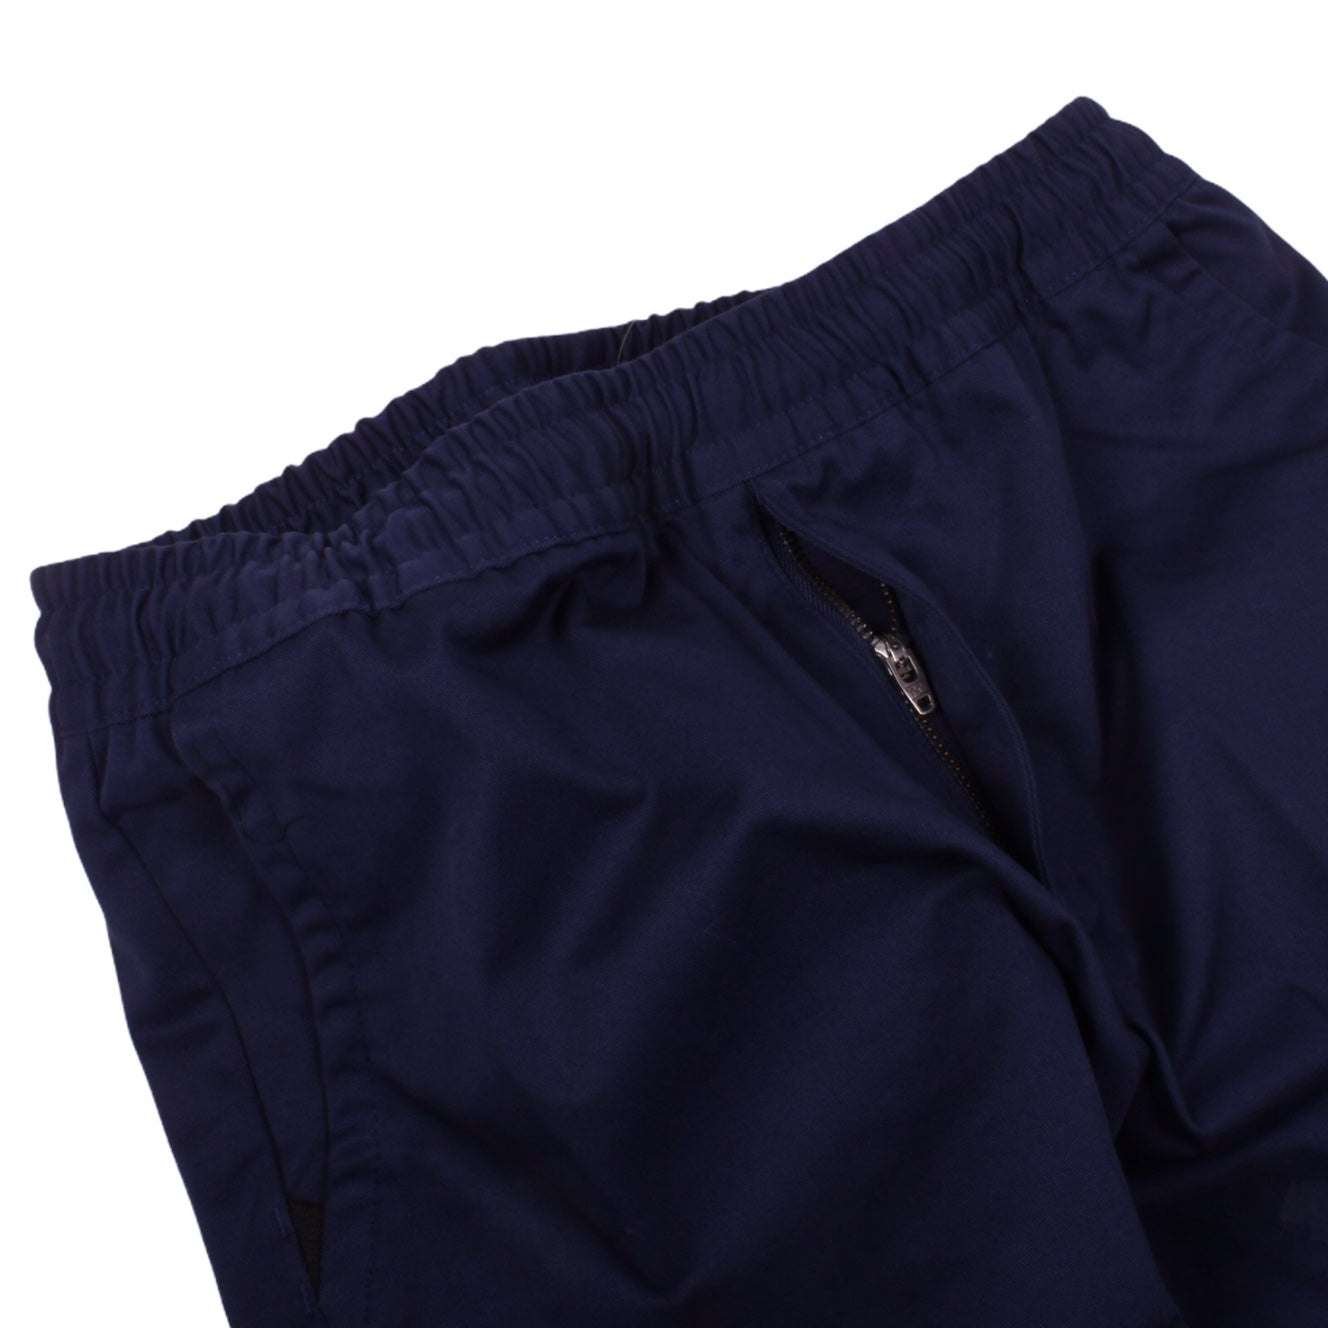 Nike SB Dry Pull On Chino Pant Midnight Navy